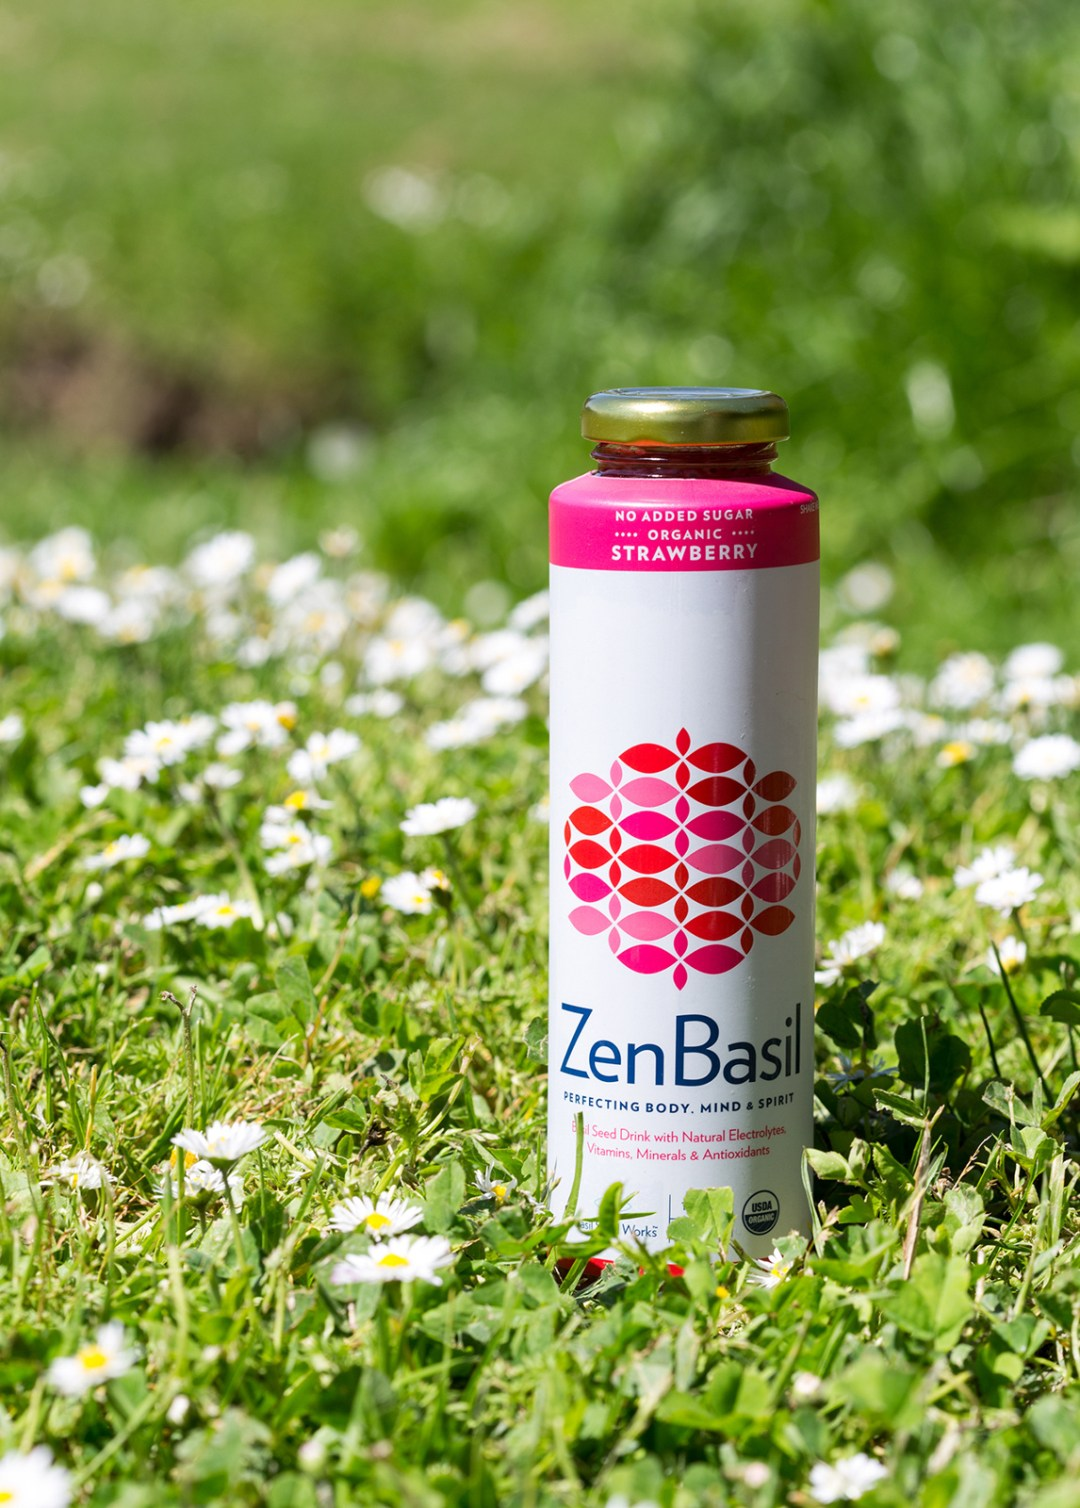 Product shot of strawberry drink on grass